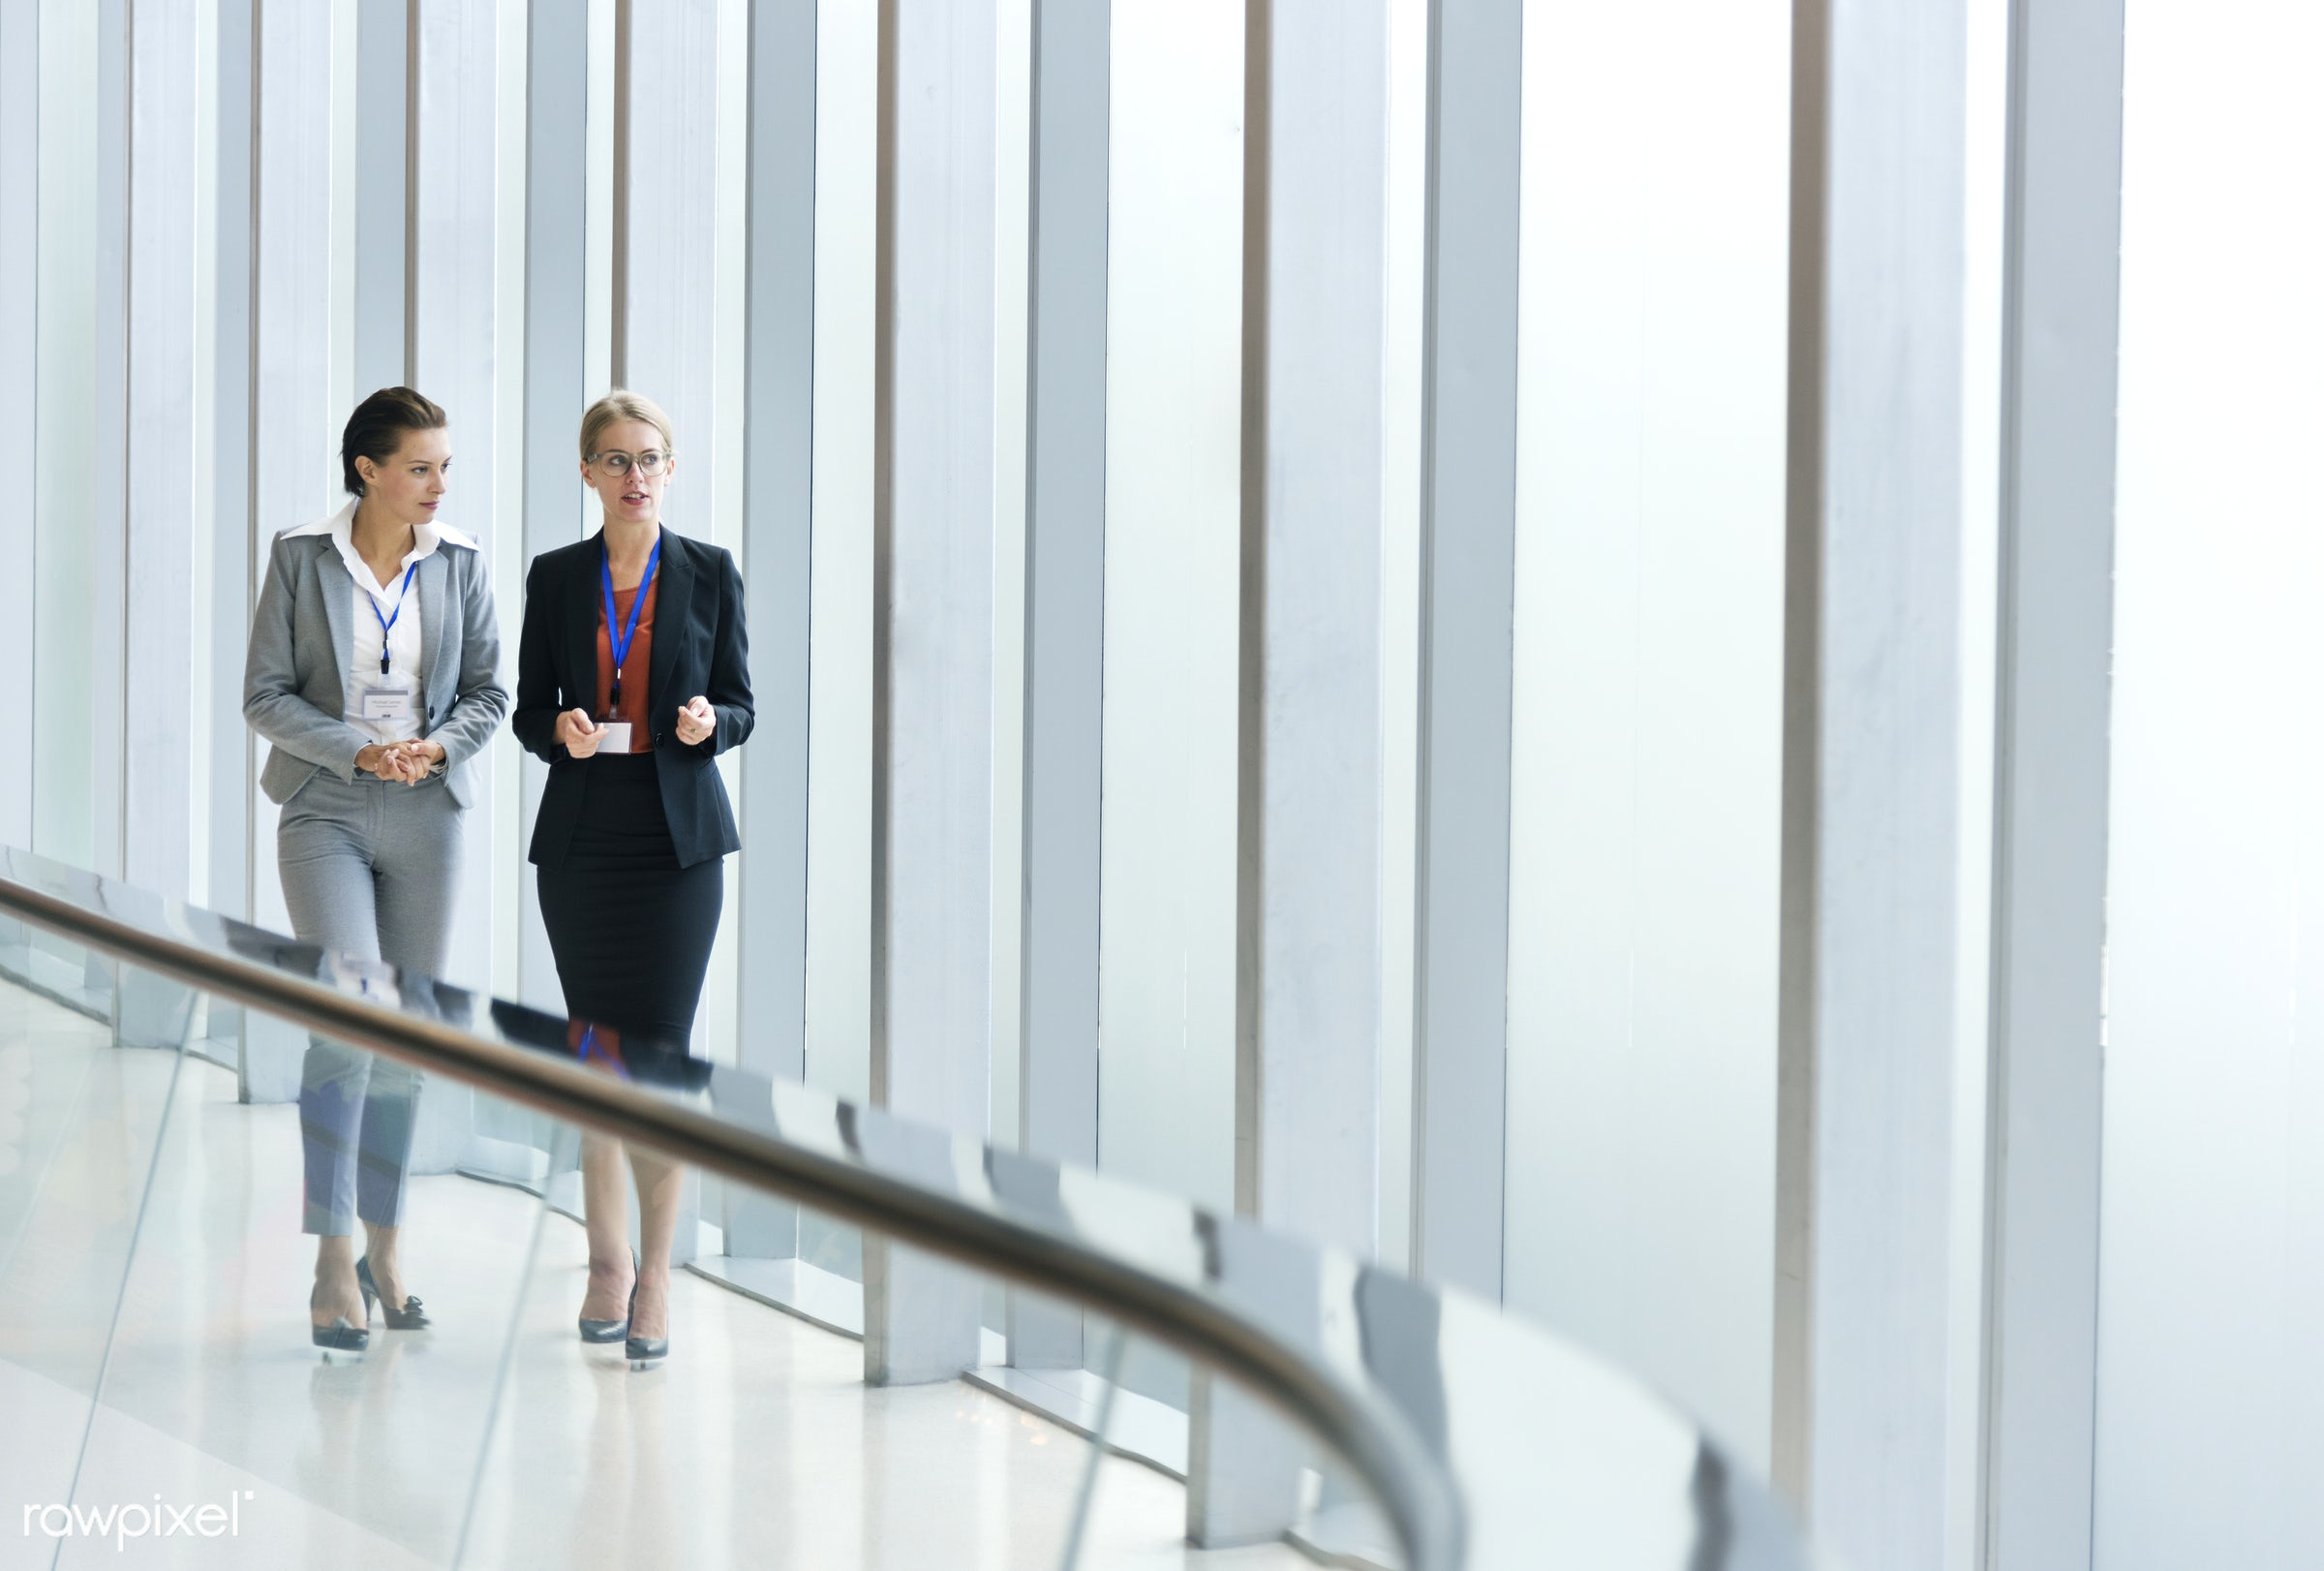 Two businesswomen working together - agreement, business, businesswomen, colaboration, colleague, communication, community,...